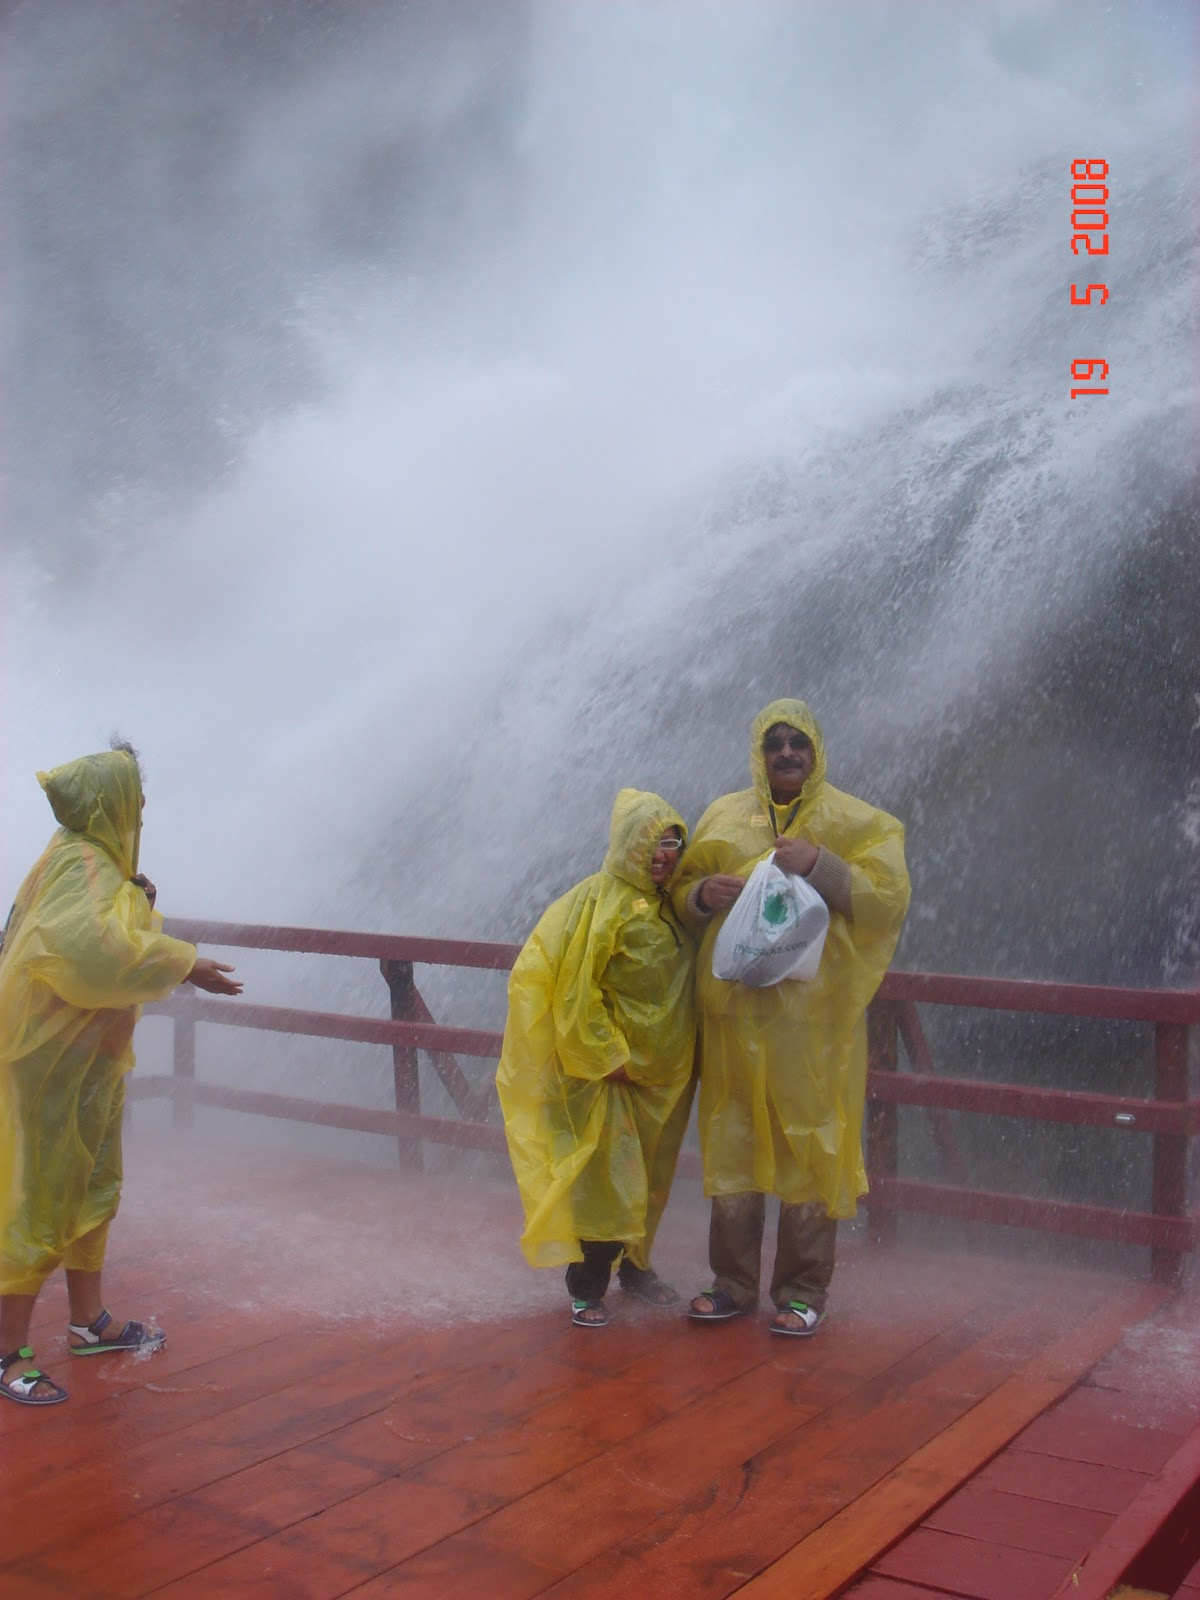 Getting wet at Goat Island at Niagara falls